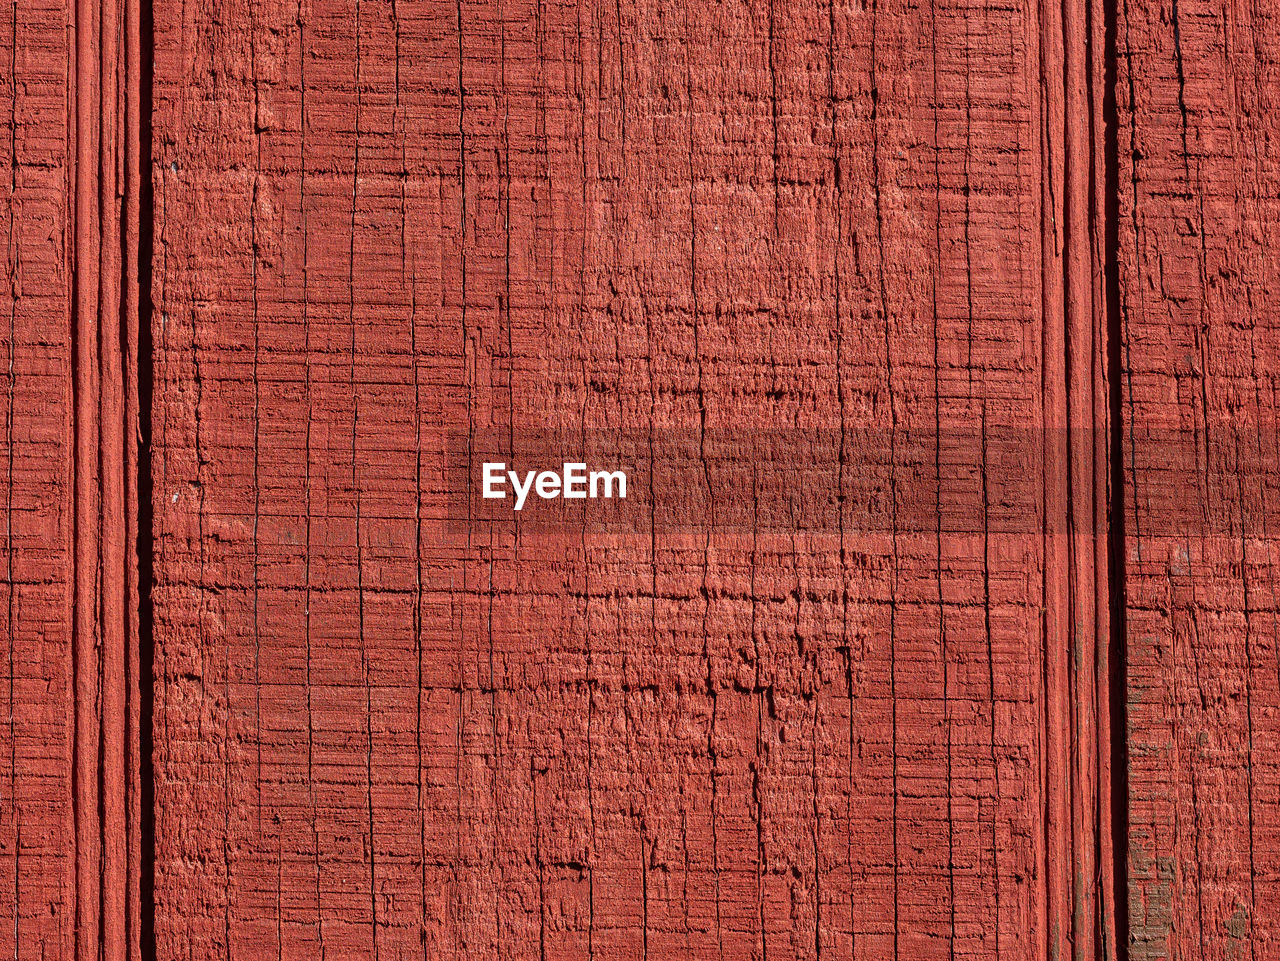 textured, backgrounds, full frame, pattern, red, no people, close-up, wood - material, day, wall - building feature, brown, rough, built structure, old, wall, architecture, outdoors, brick, weathered, brick wall, wood grain, textured effect